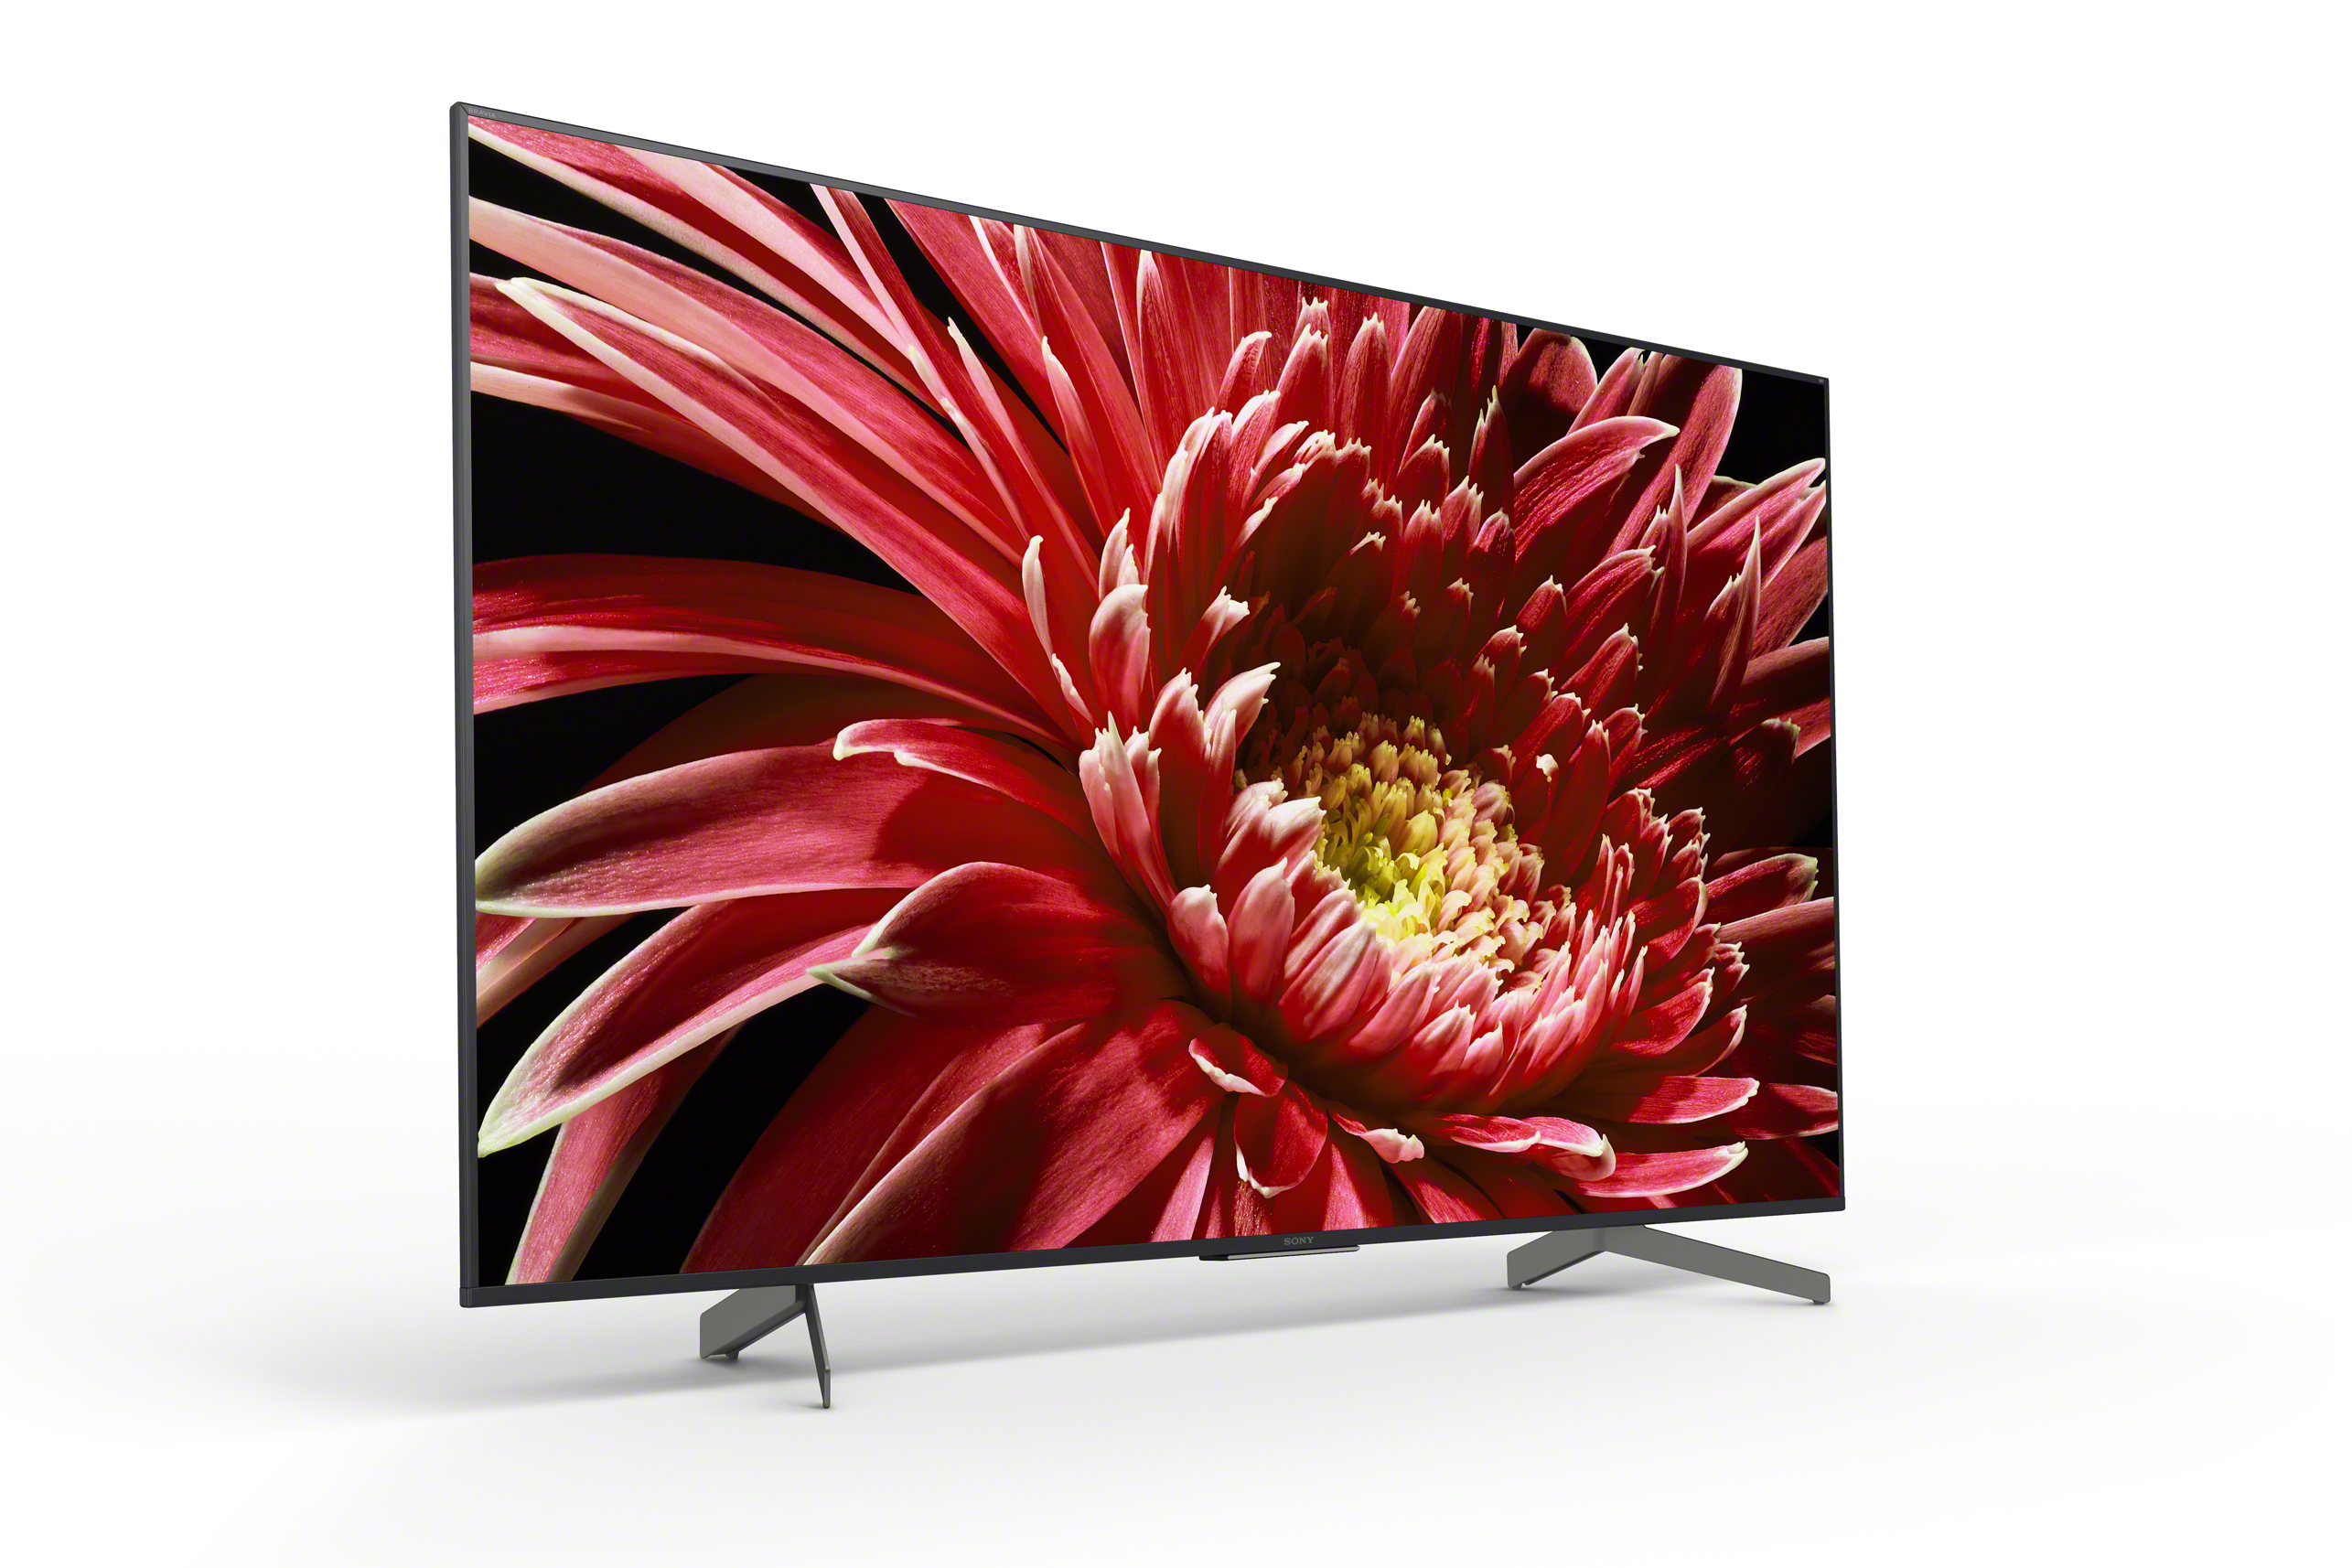 Sony XBR850G Series 4K ULTRA HD LED TV with X1  Processor